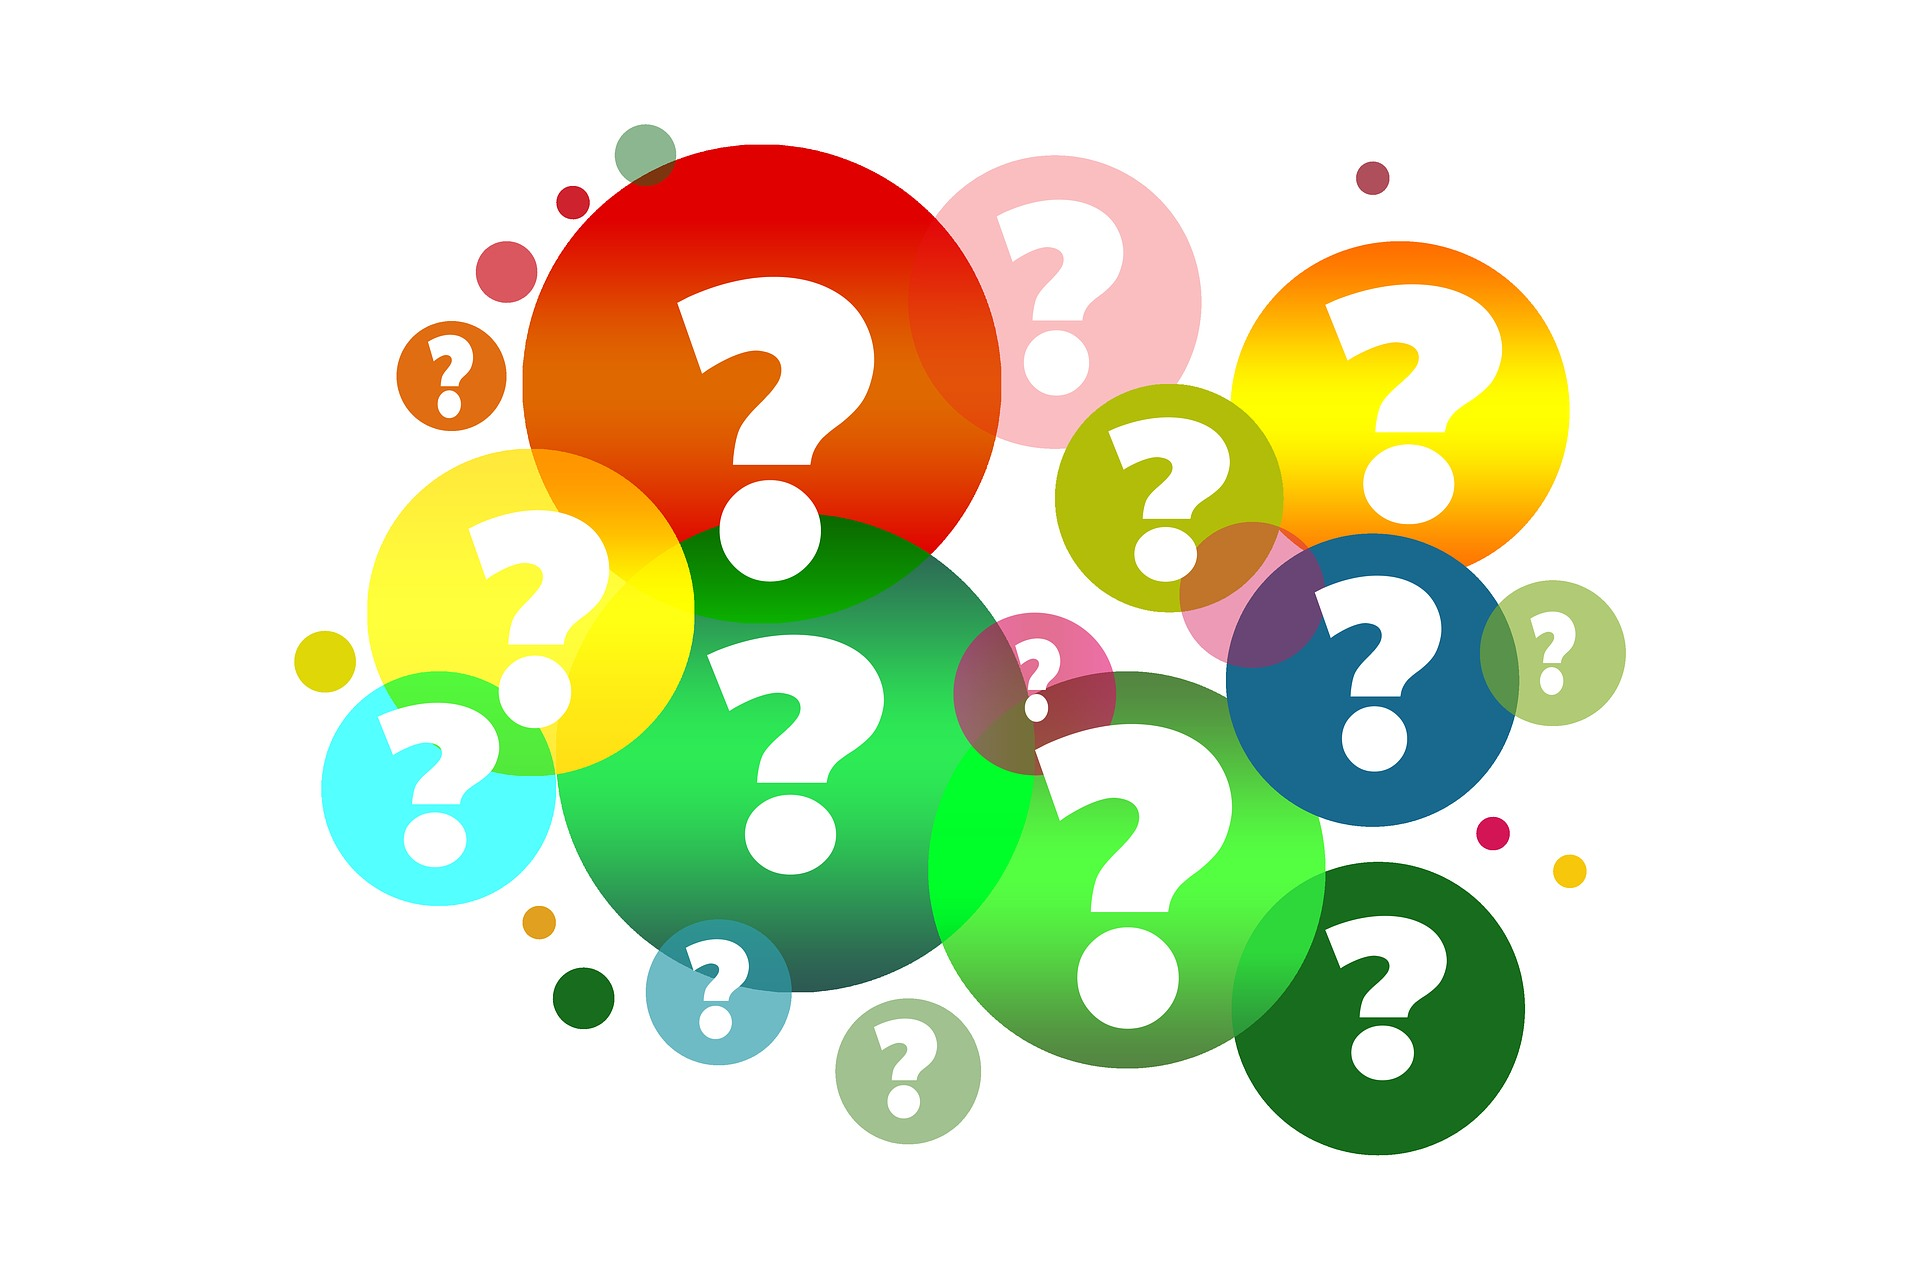 Image showing colourful question marks